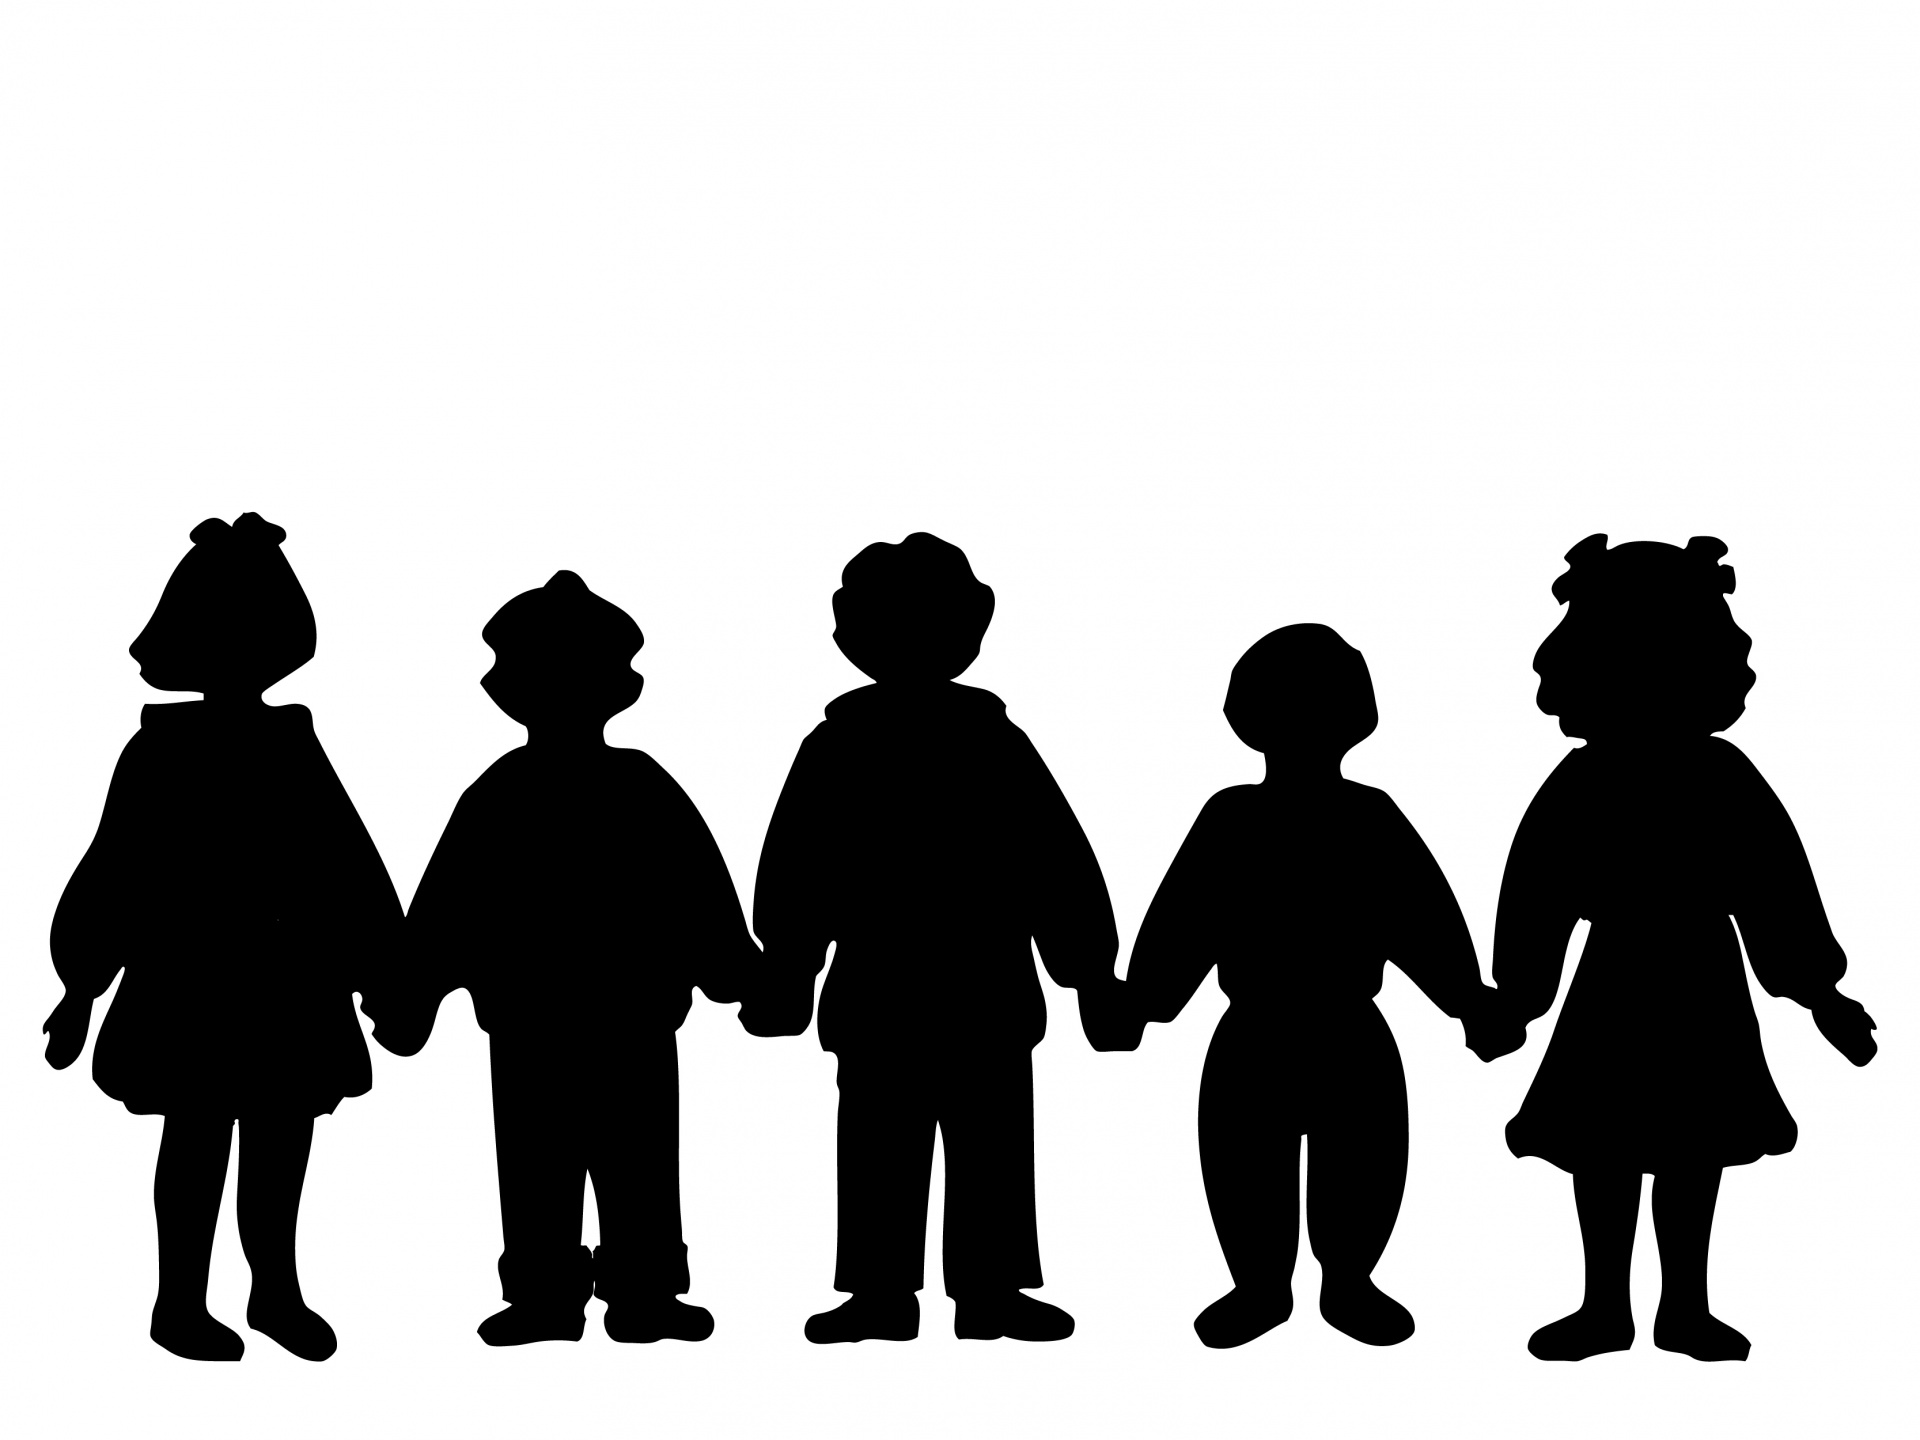 1920x1440 Children Holding Hands Silhouette Free Stock Photo